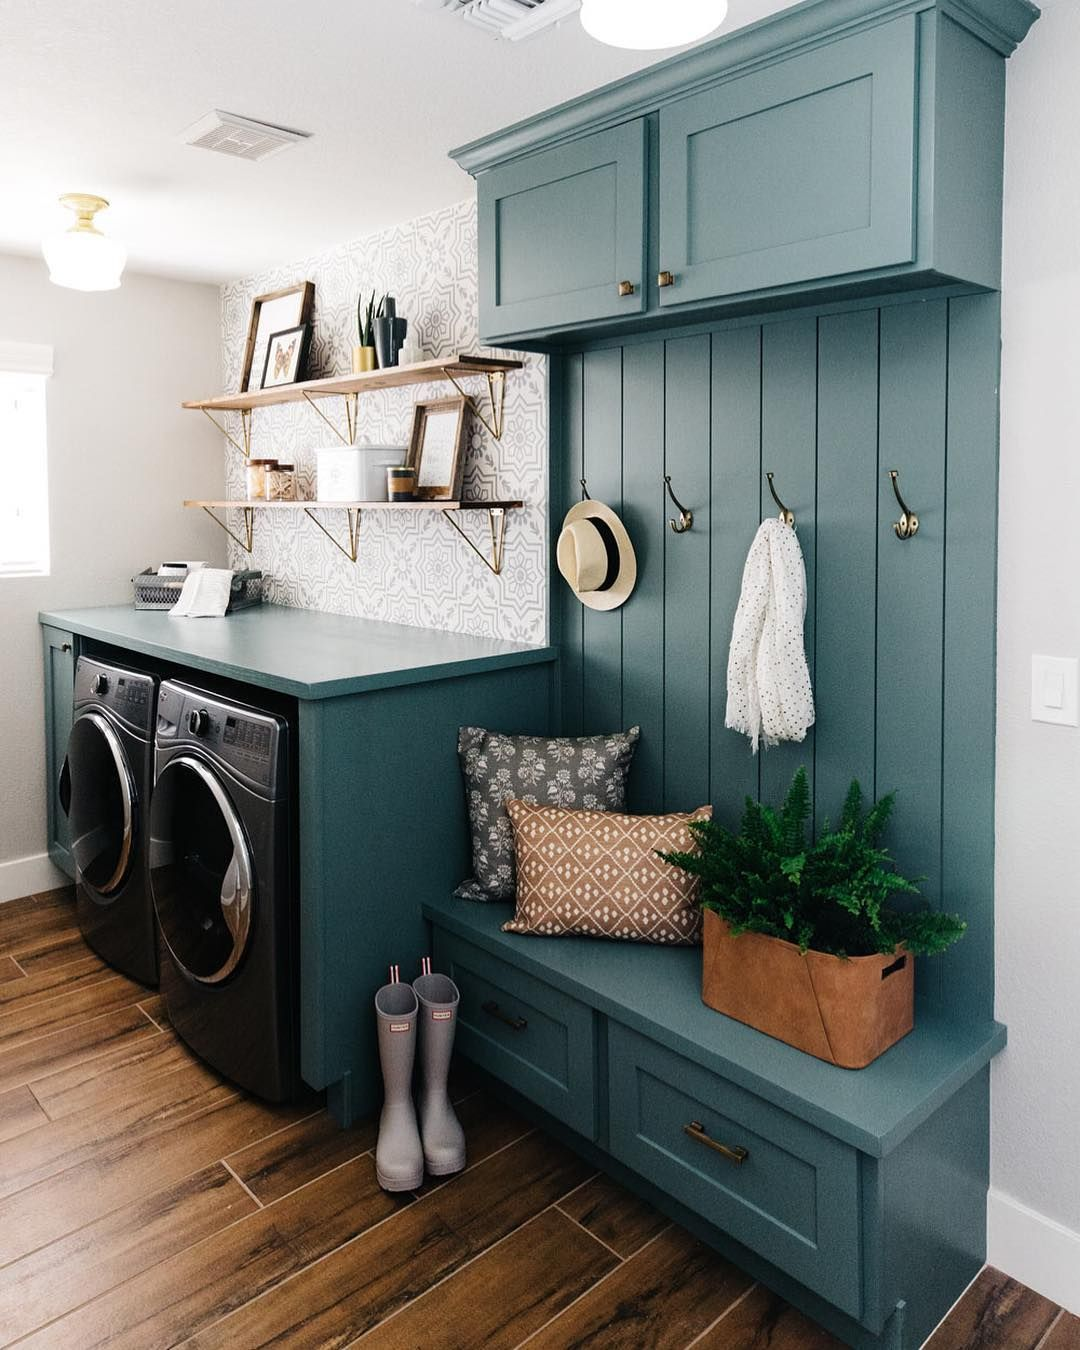 paint color studio blue green sherwin williams gorgeous on paint for laundry room floor ideas images id=31979